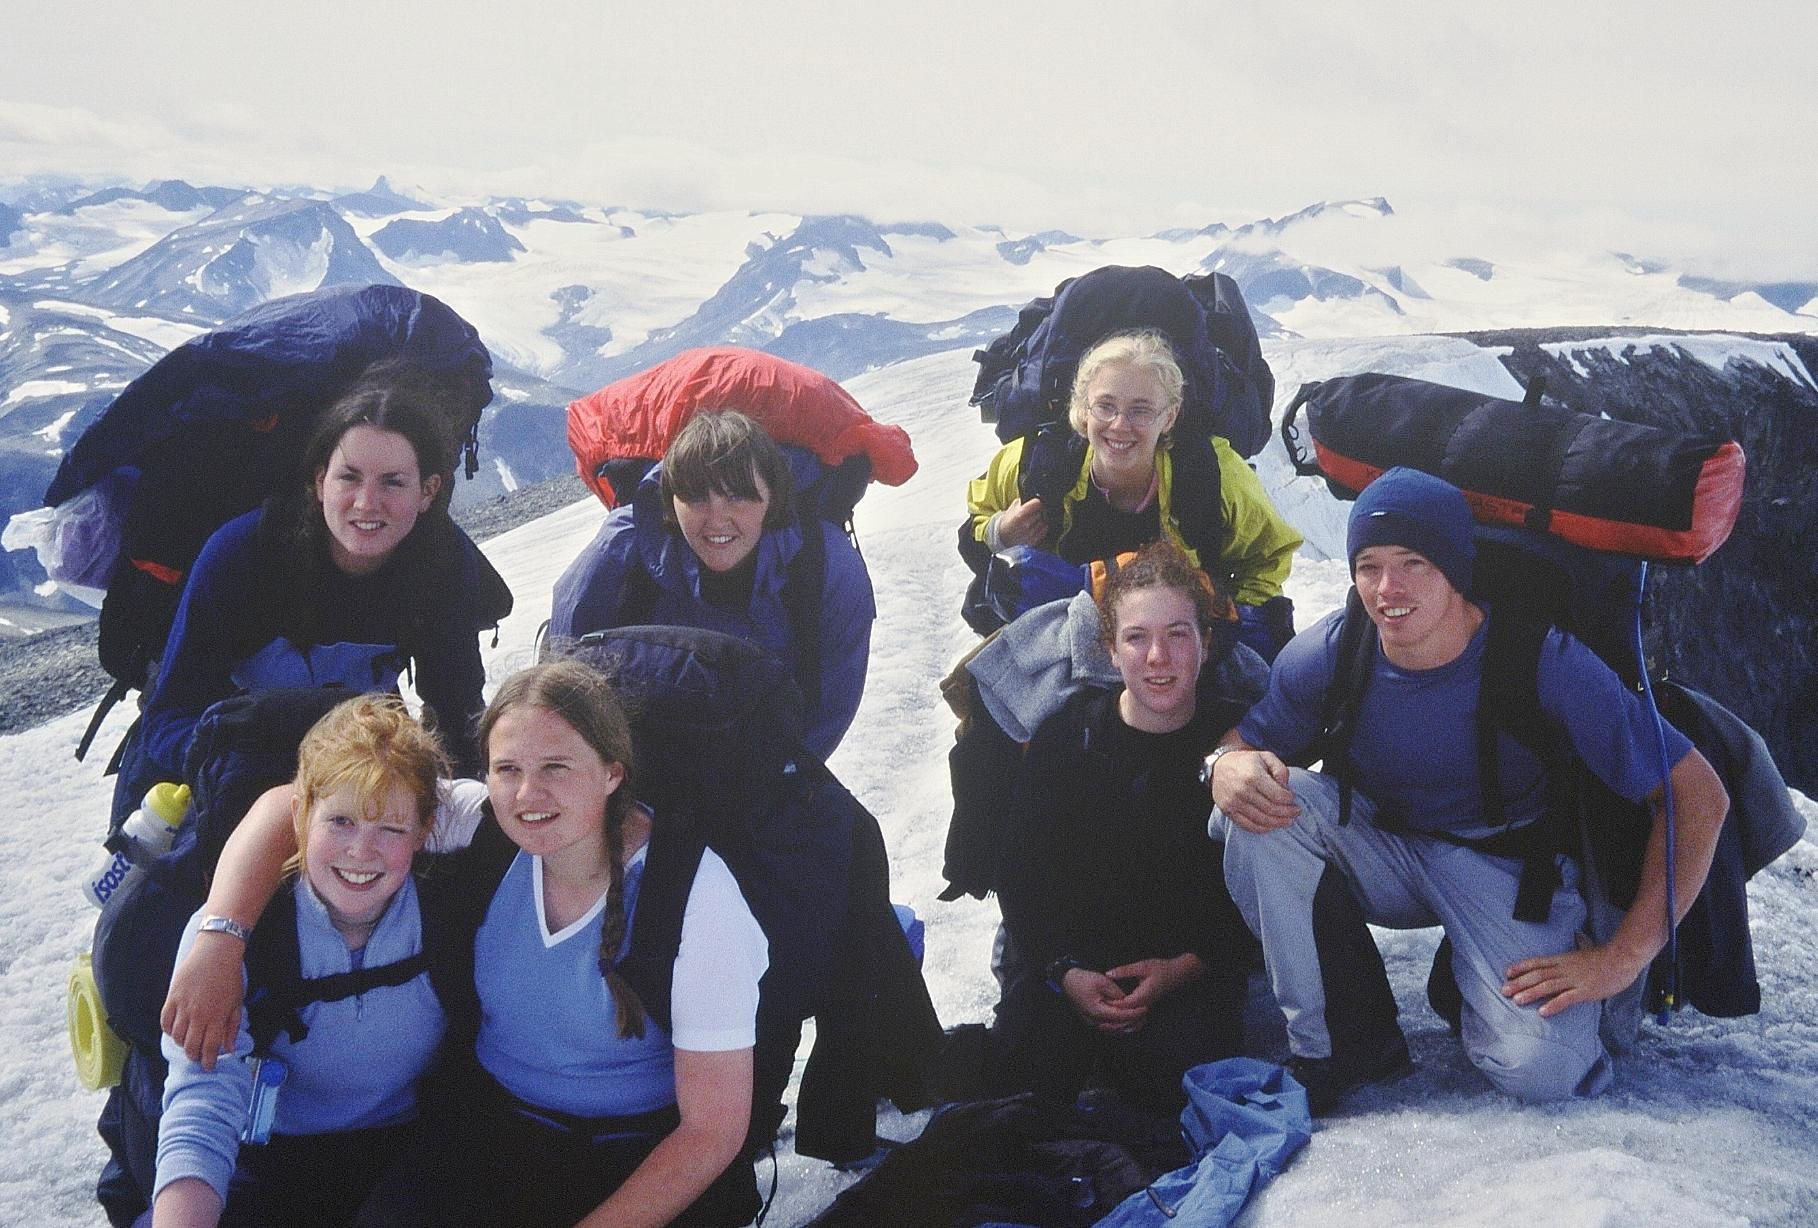 Youth group at top of Galdhøpiggen mountain, Norway in 2003